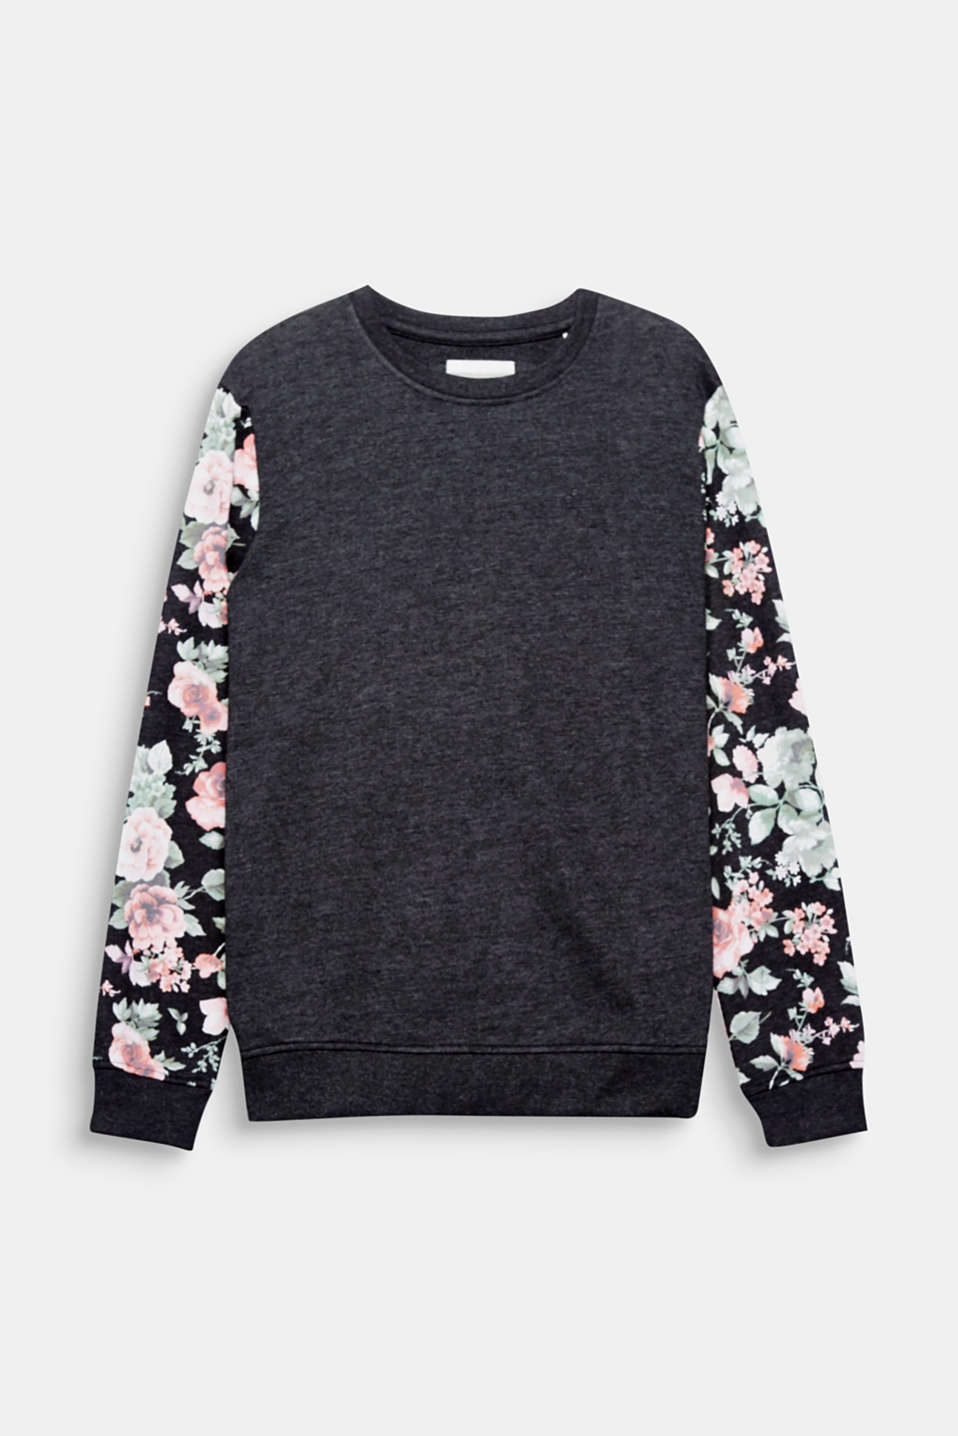 We love flowers! The sleeves with a floral print make this sweatshirt a trendy head-turner.